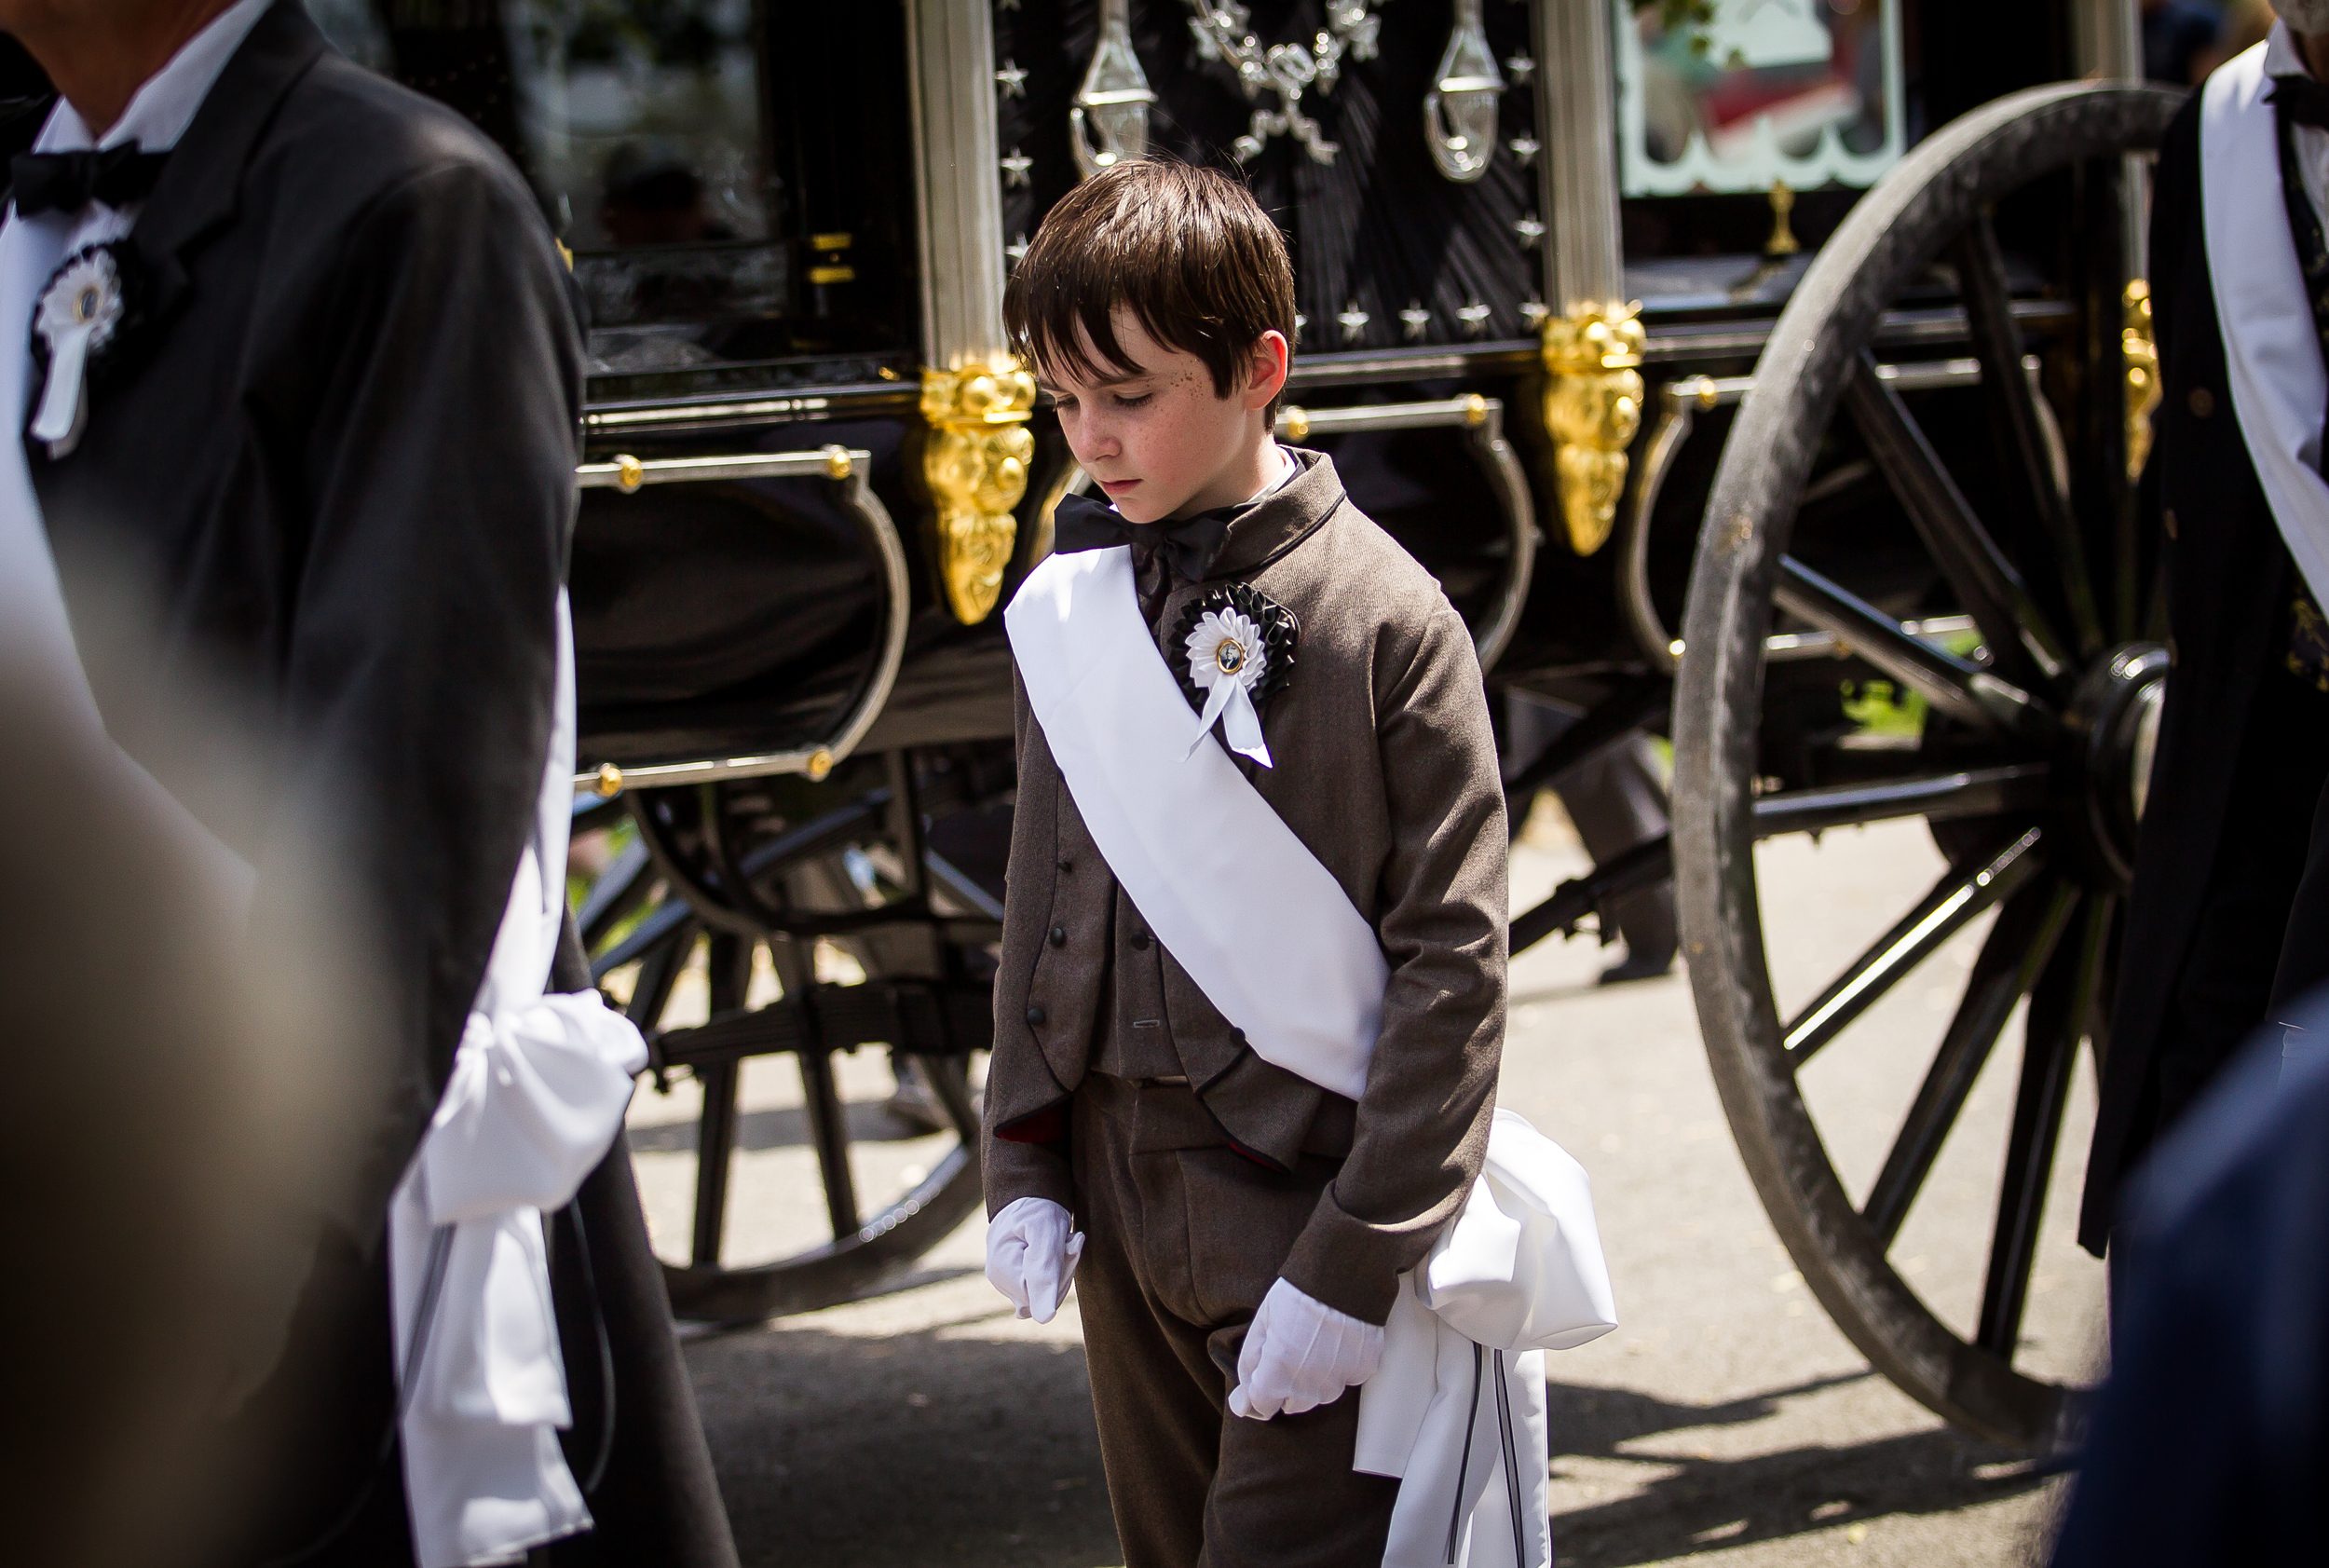 William Polston, 11, of Minneapolis, Minn., serves as a pallbearer walking